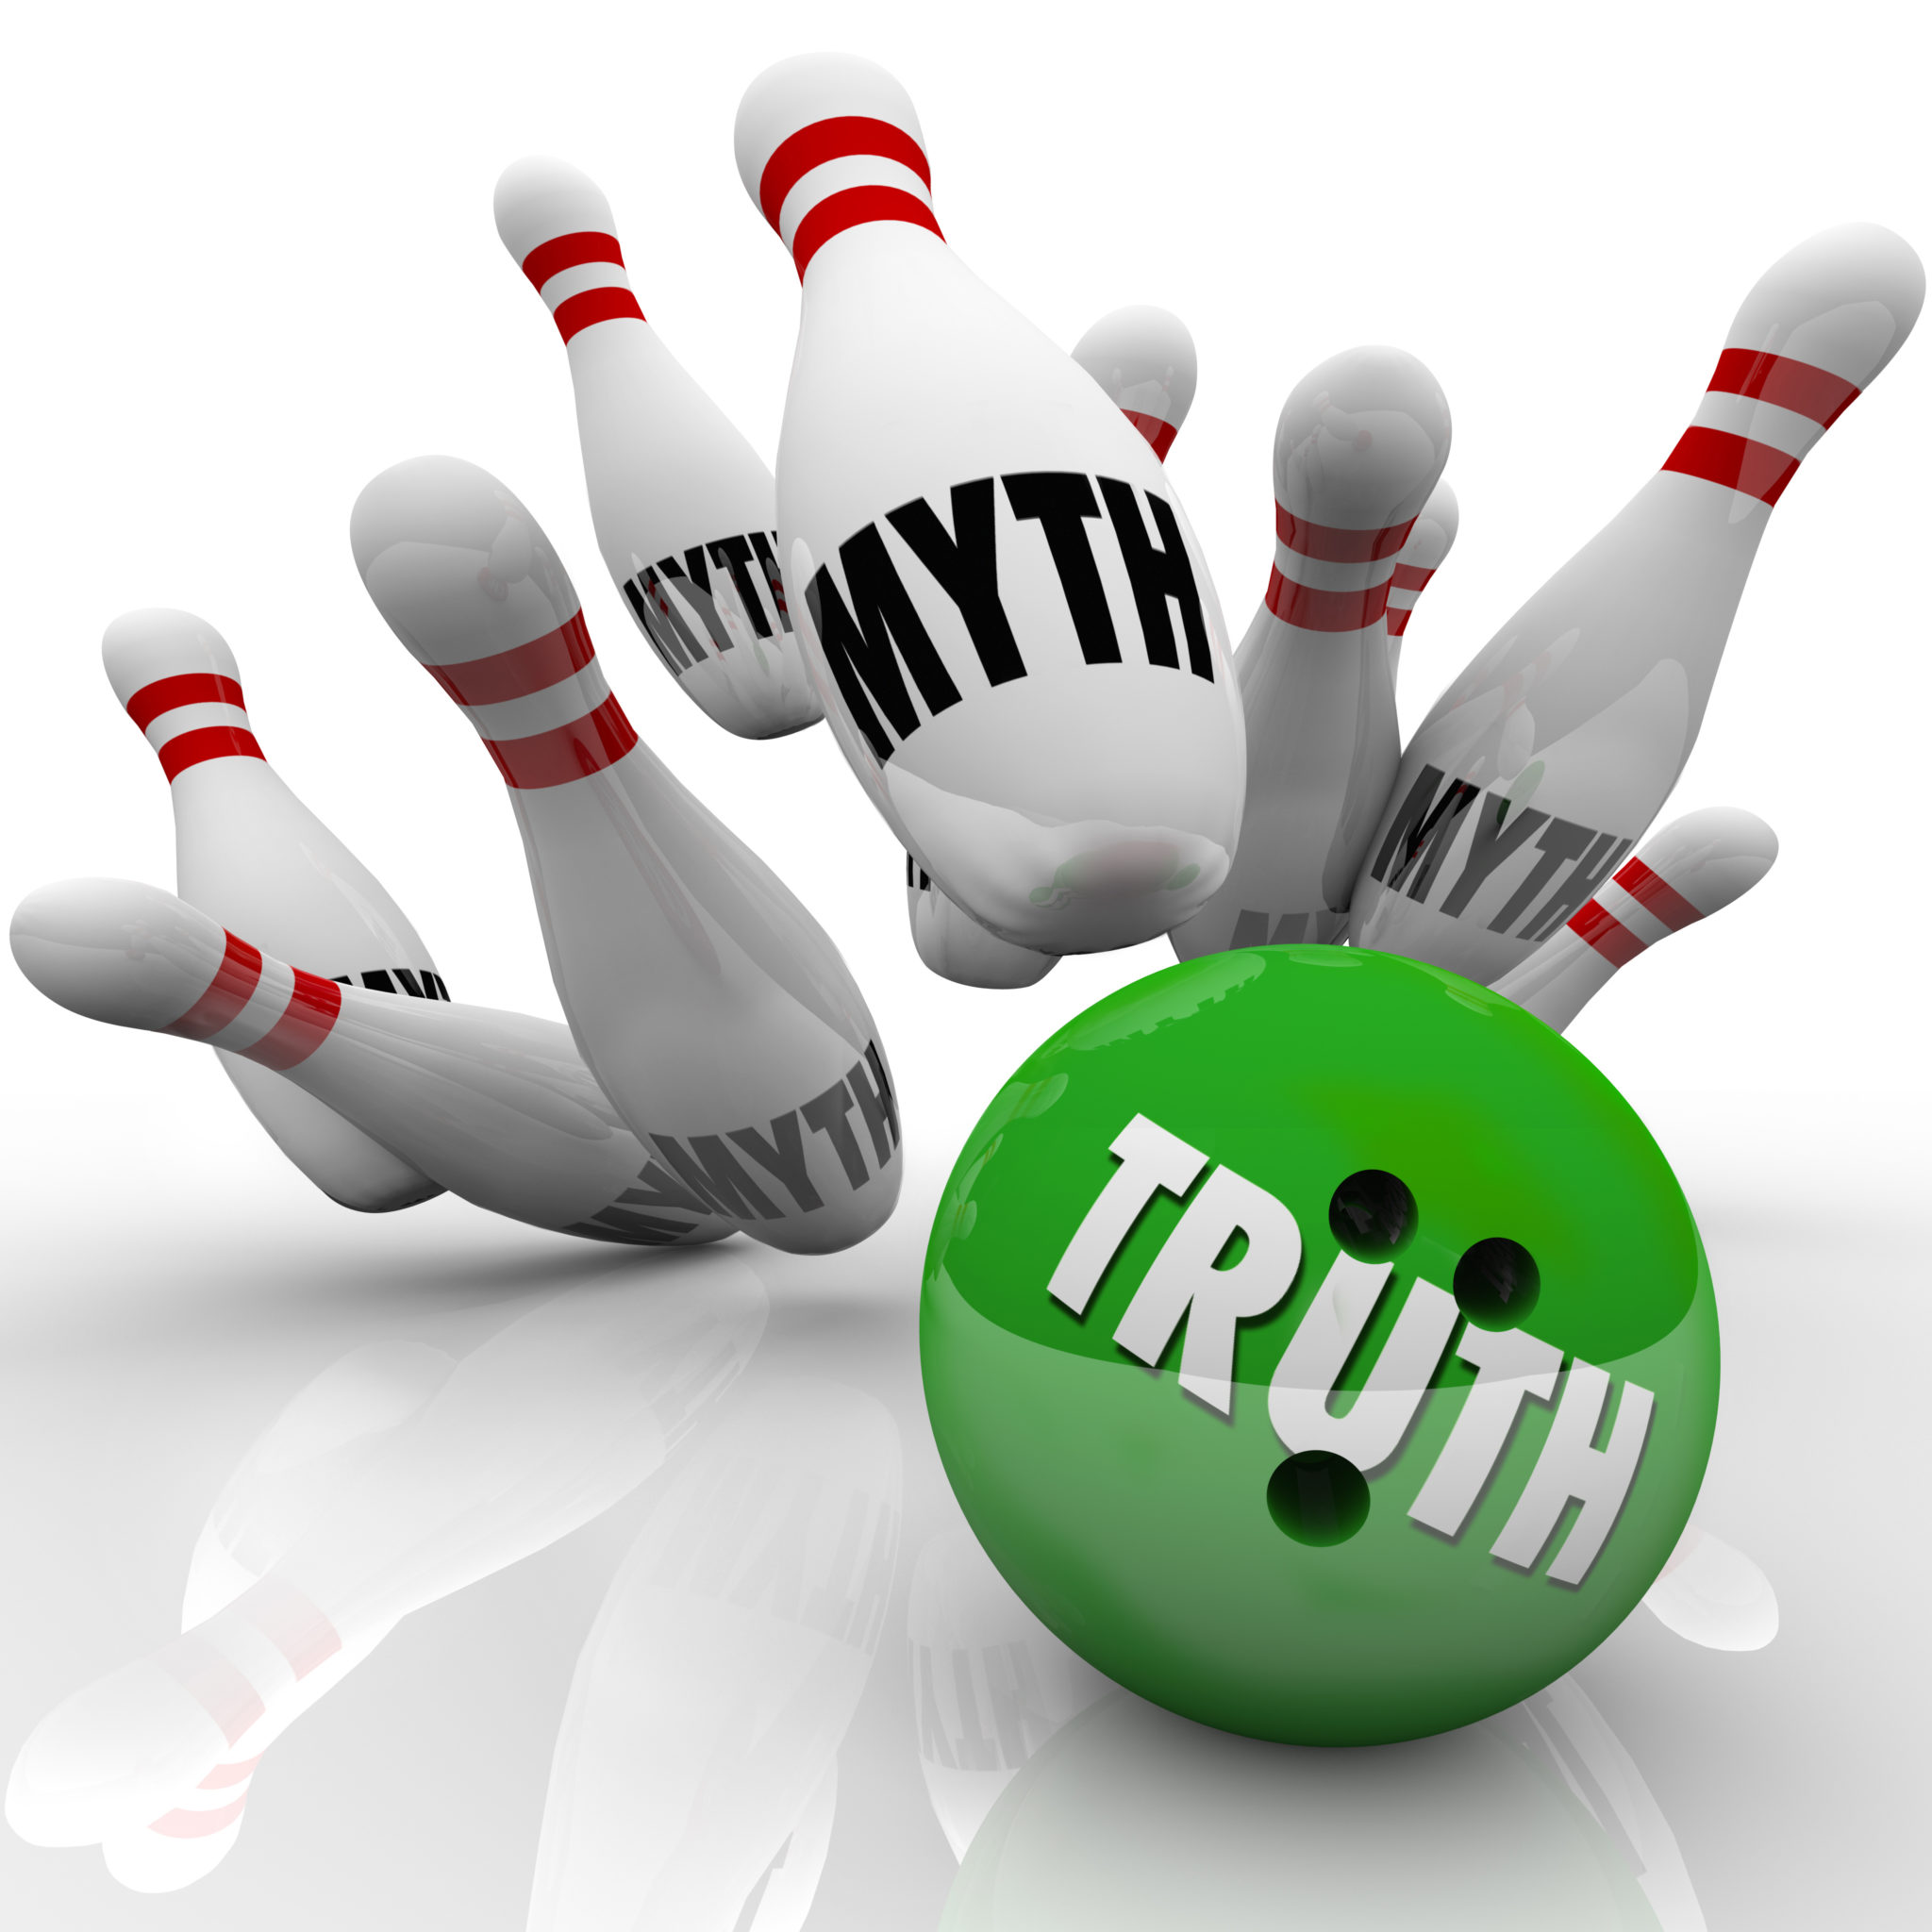 Insights into Special Education Newsletter: Myths Busted